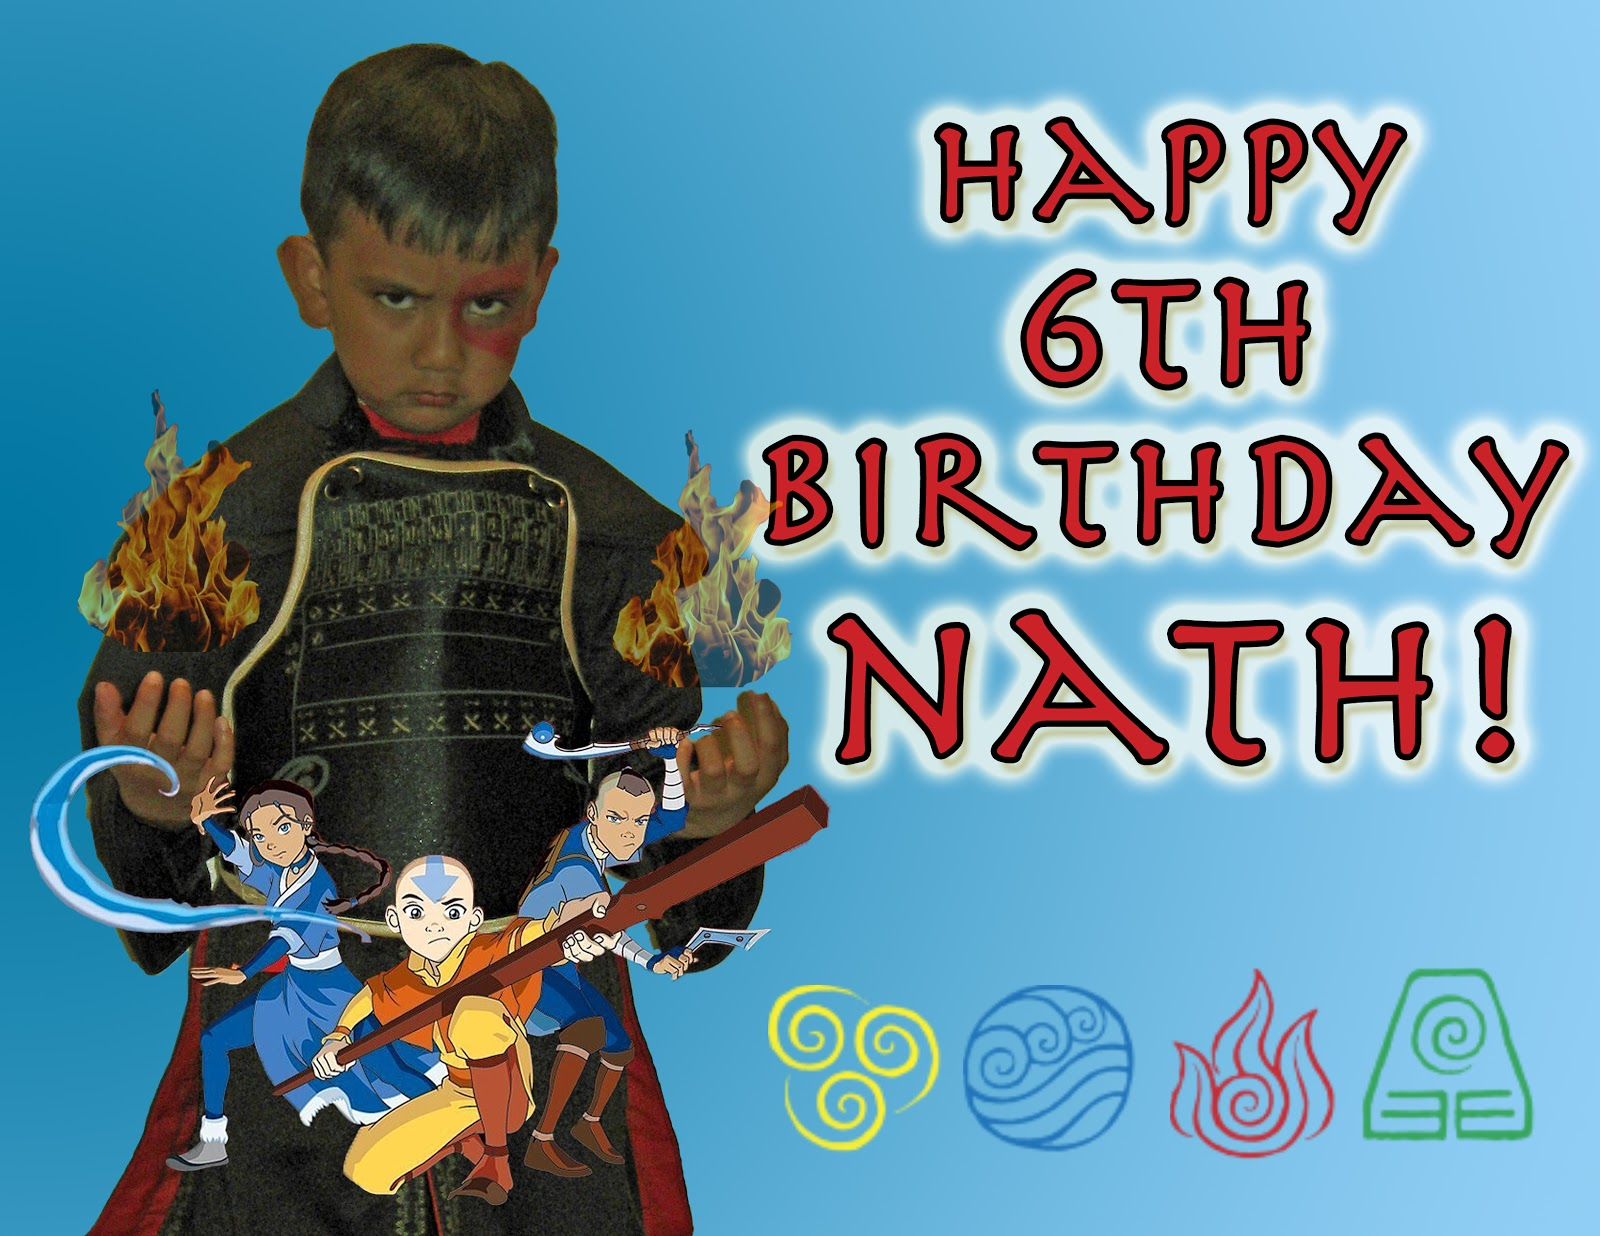 Cheng and 3 Kids Nath s Avatar The Last Airbender Themed 6th